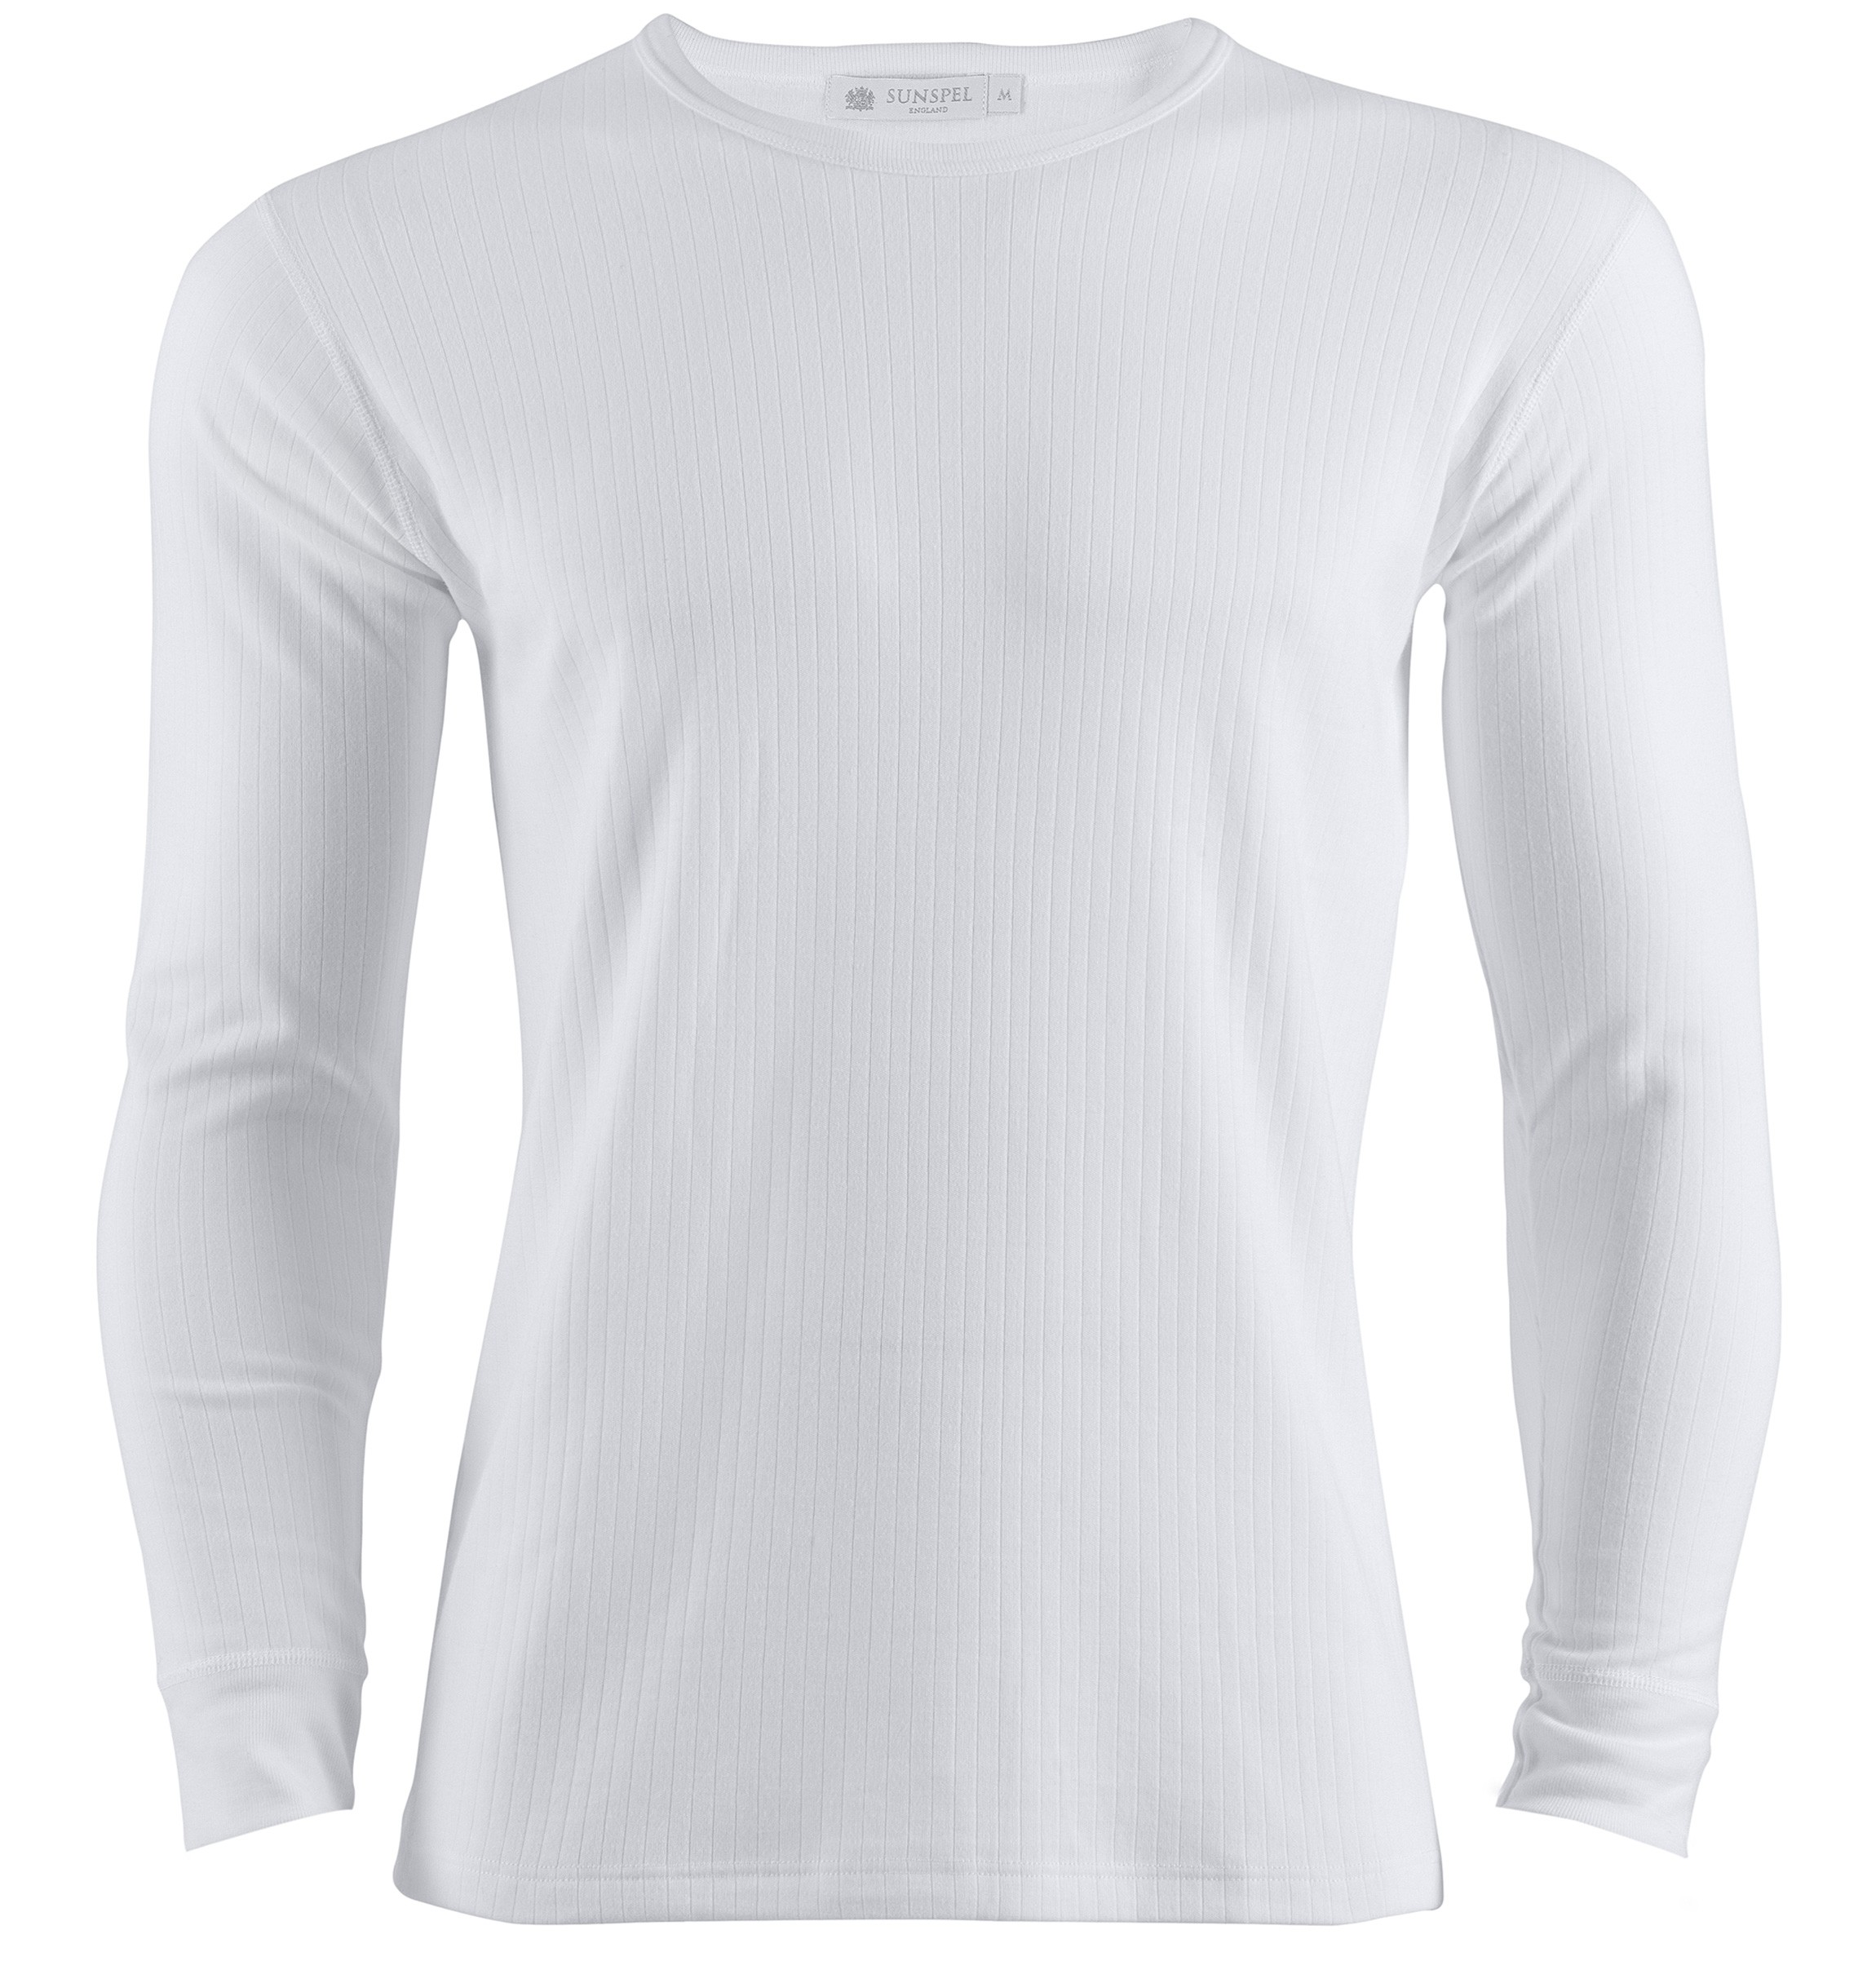 Sunspel long sleeve thermal t shirt in white for men lyst for What is a long sleeve t shirt